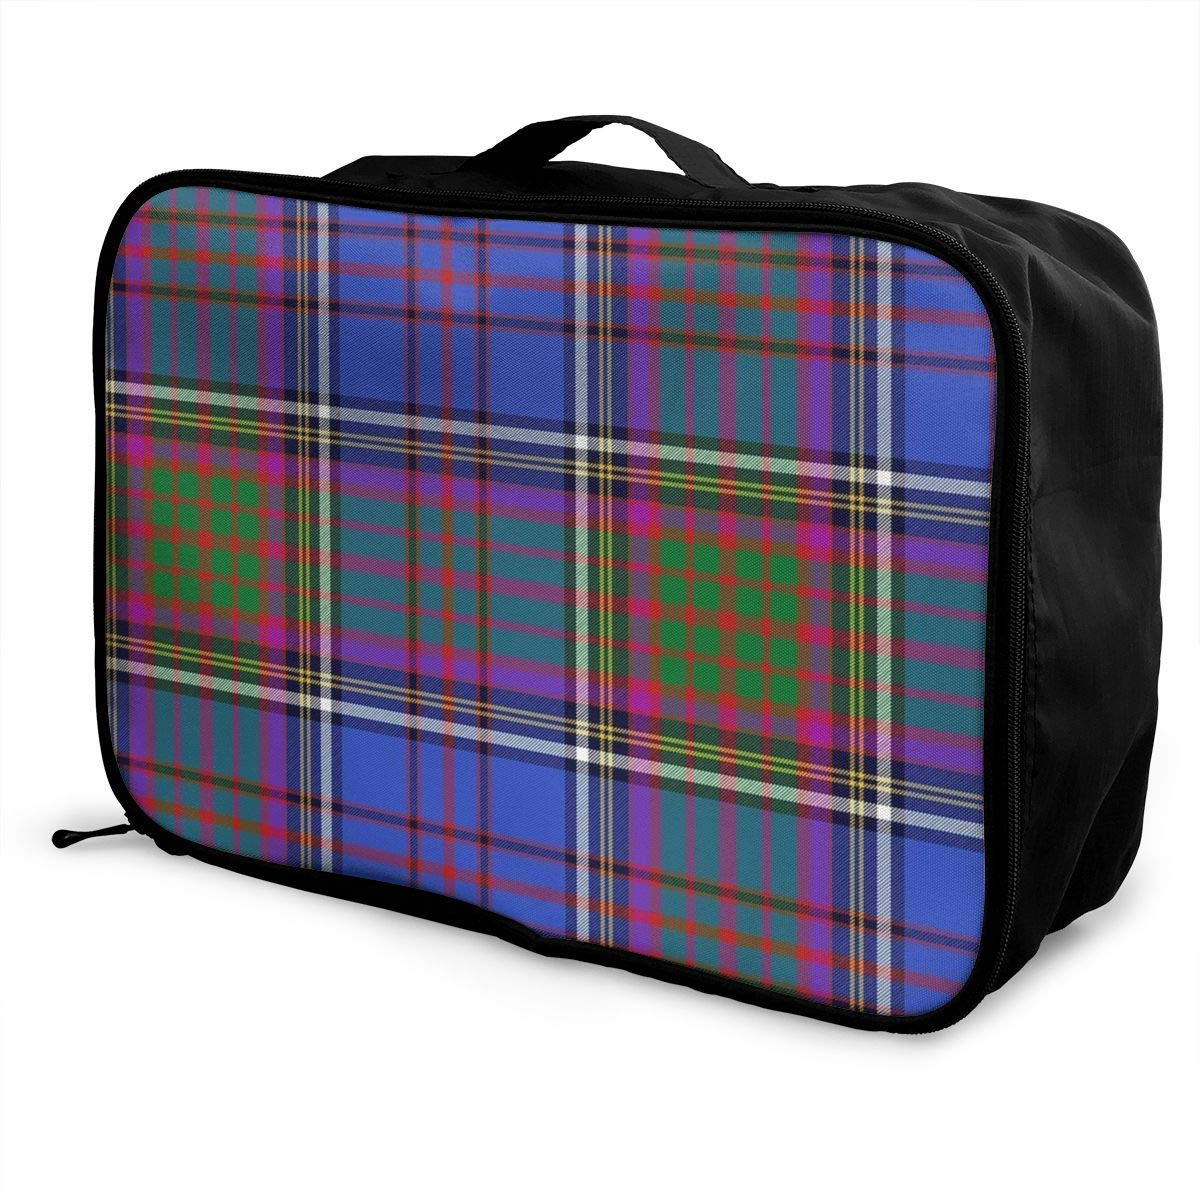 Portable Luggage Duffel Bag Anderson Tartan Travel Bags Carry-on In Trolley Handle